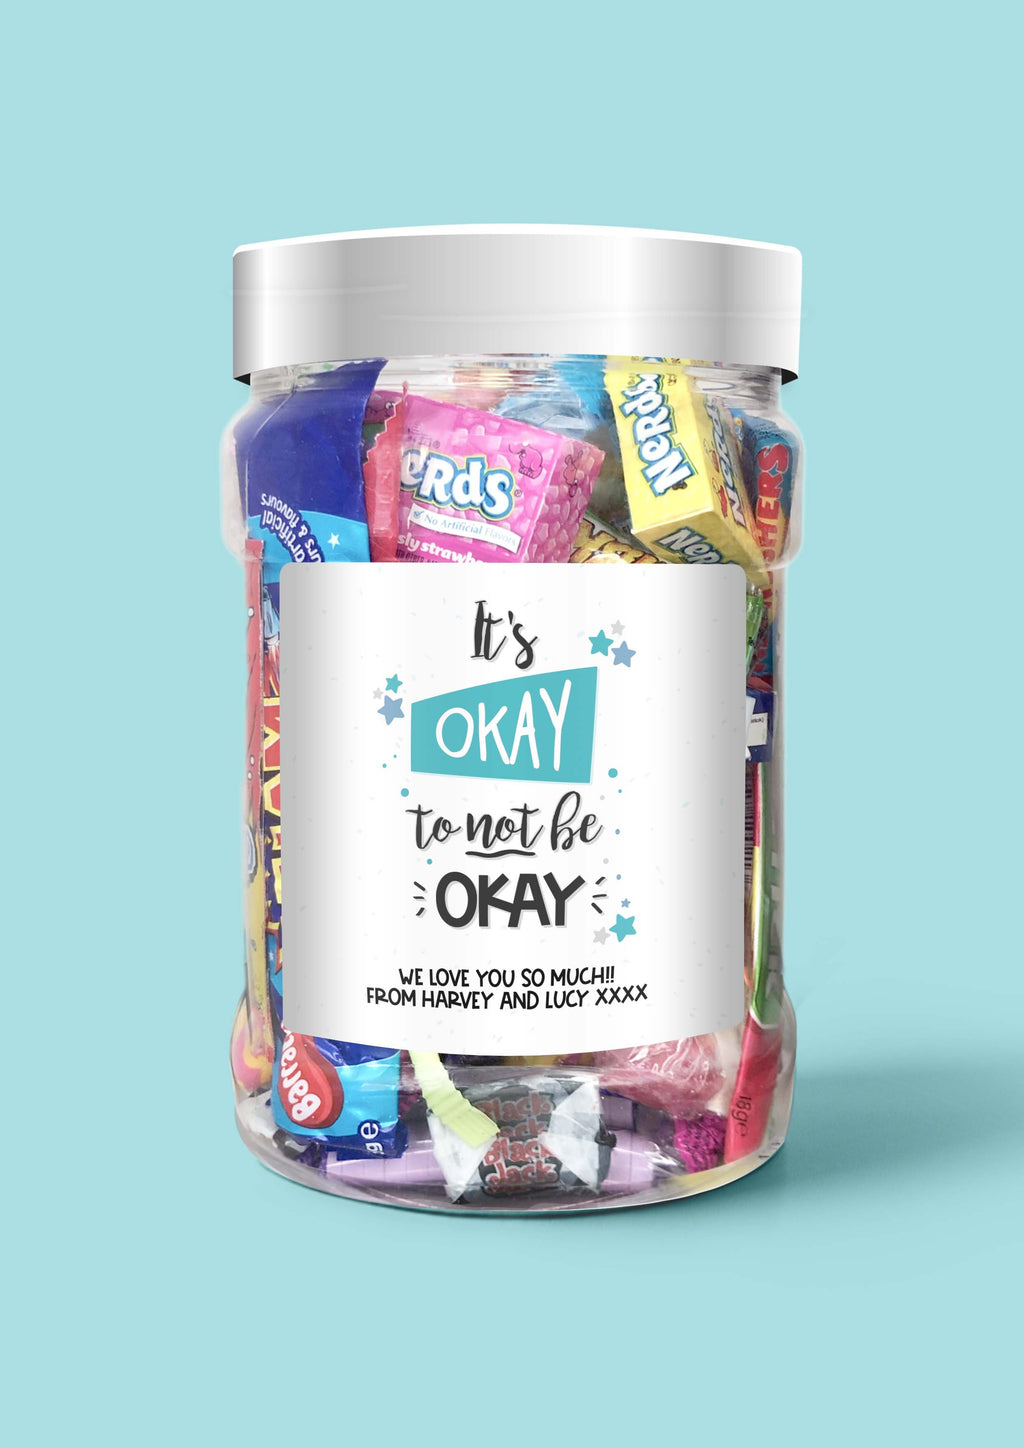 It's Okay To Not Be Okay - Sweet Dreams Candy Ltd